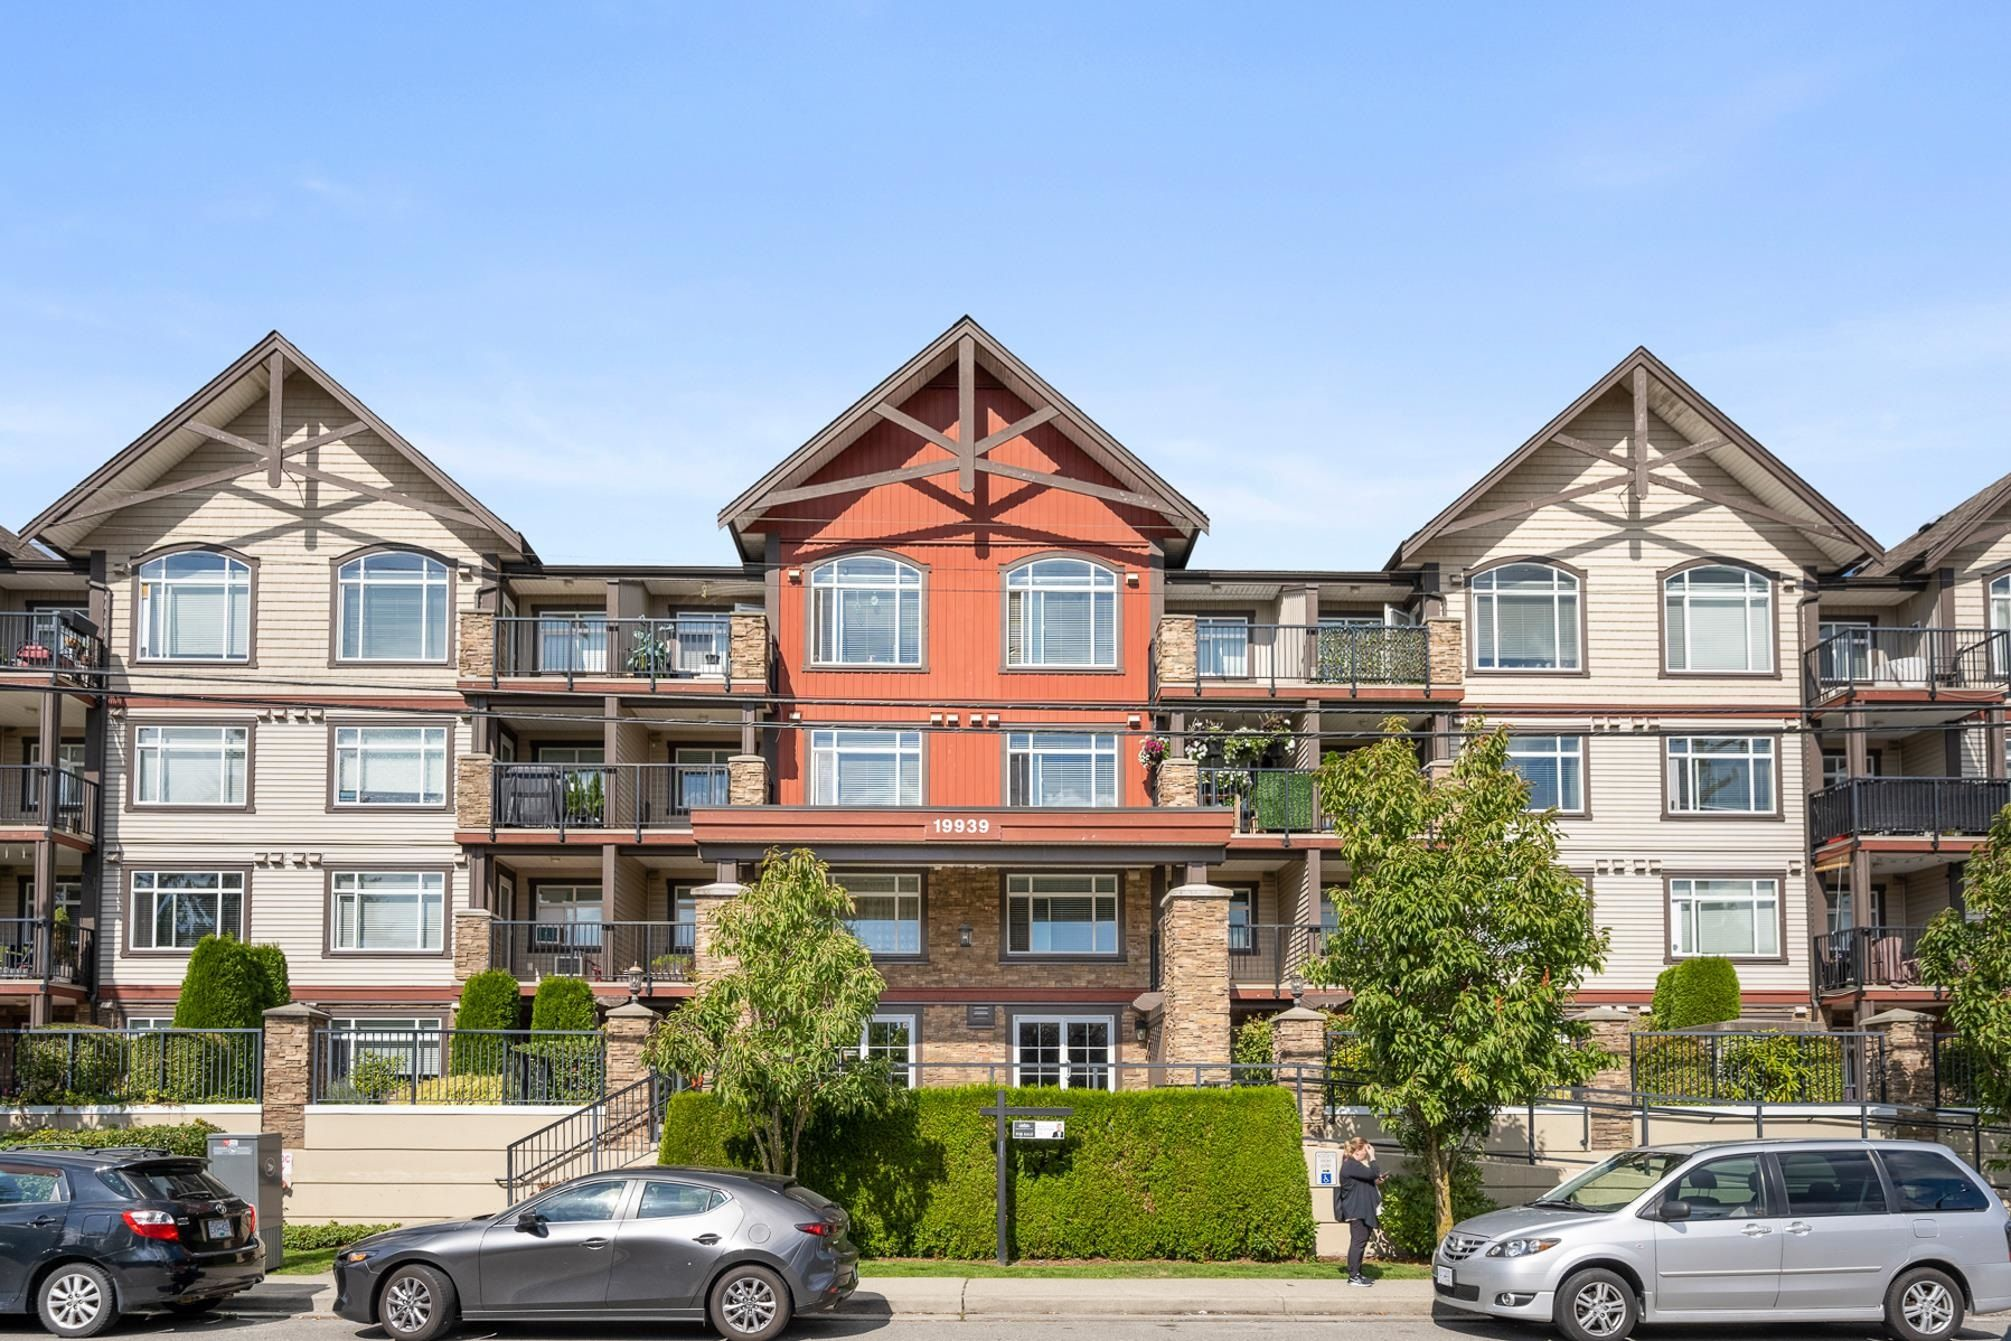 """Main Photo: 314 19939 55A Avenue in Langley: Langley City Condo for sale in """"MADISON CROSSING"""" : MLS®# R2616834"""